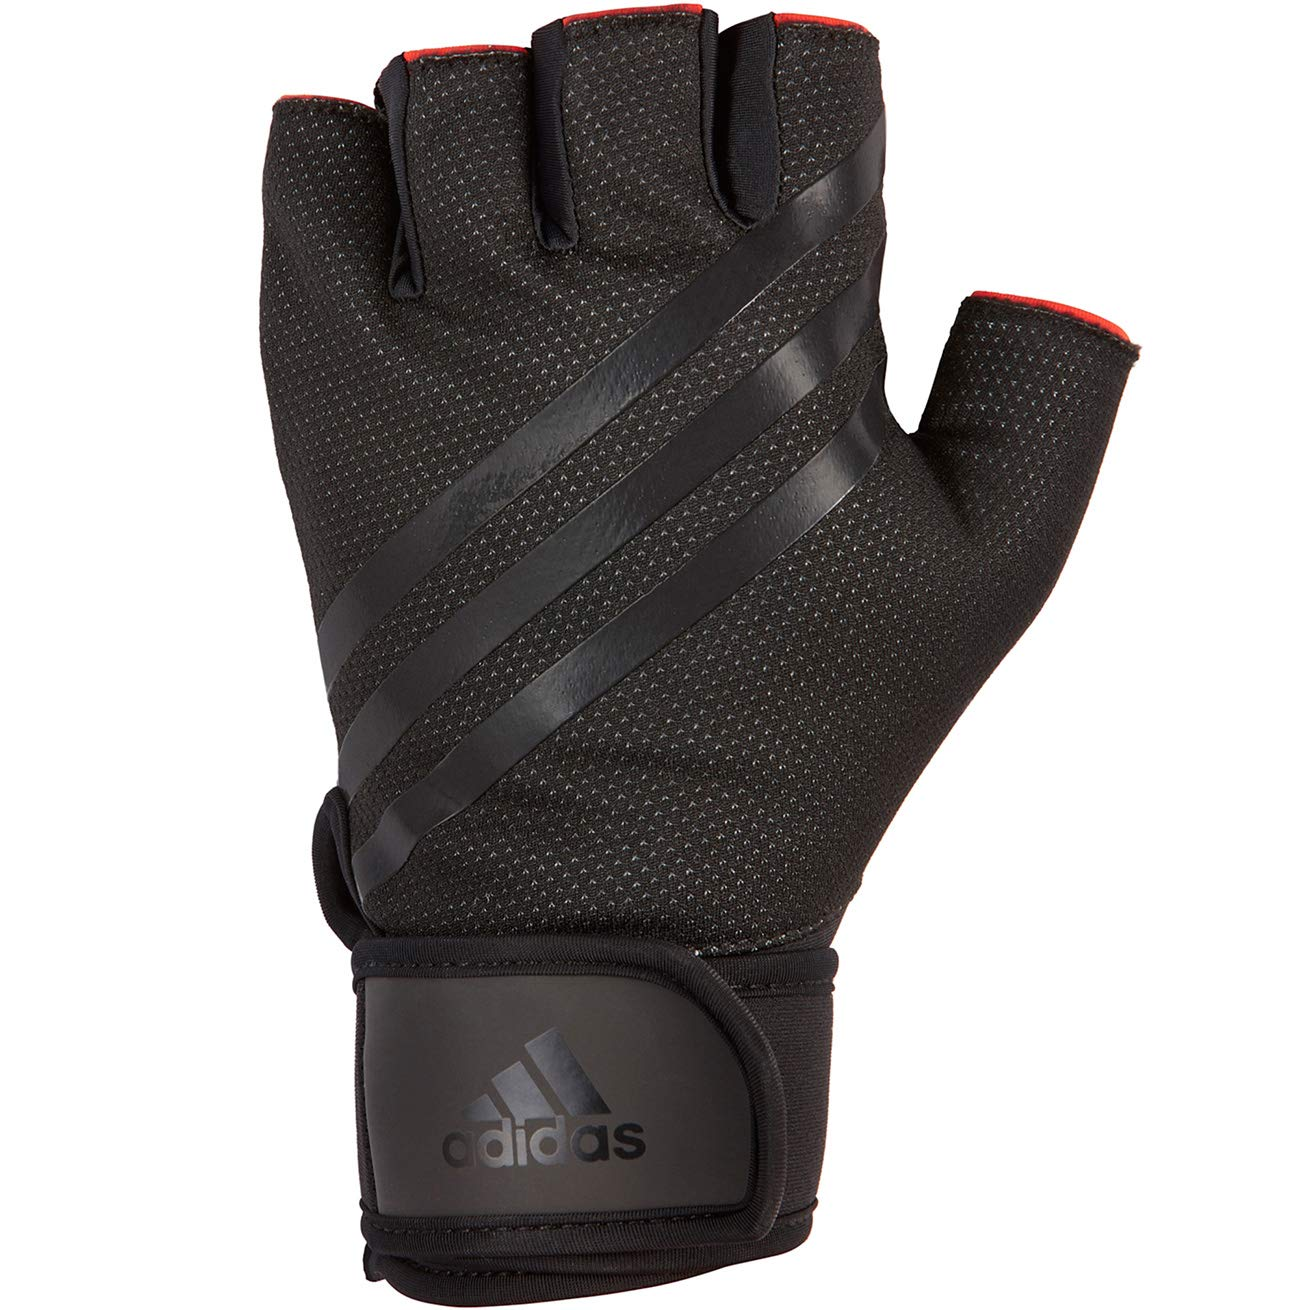 Adidas Elite Training Gloves Unisex Handschuh, Schwarz/Black, S